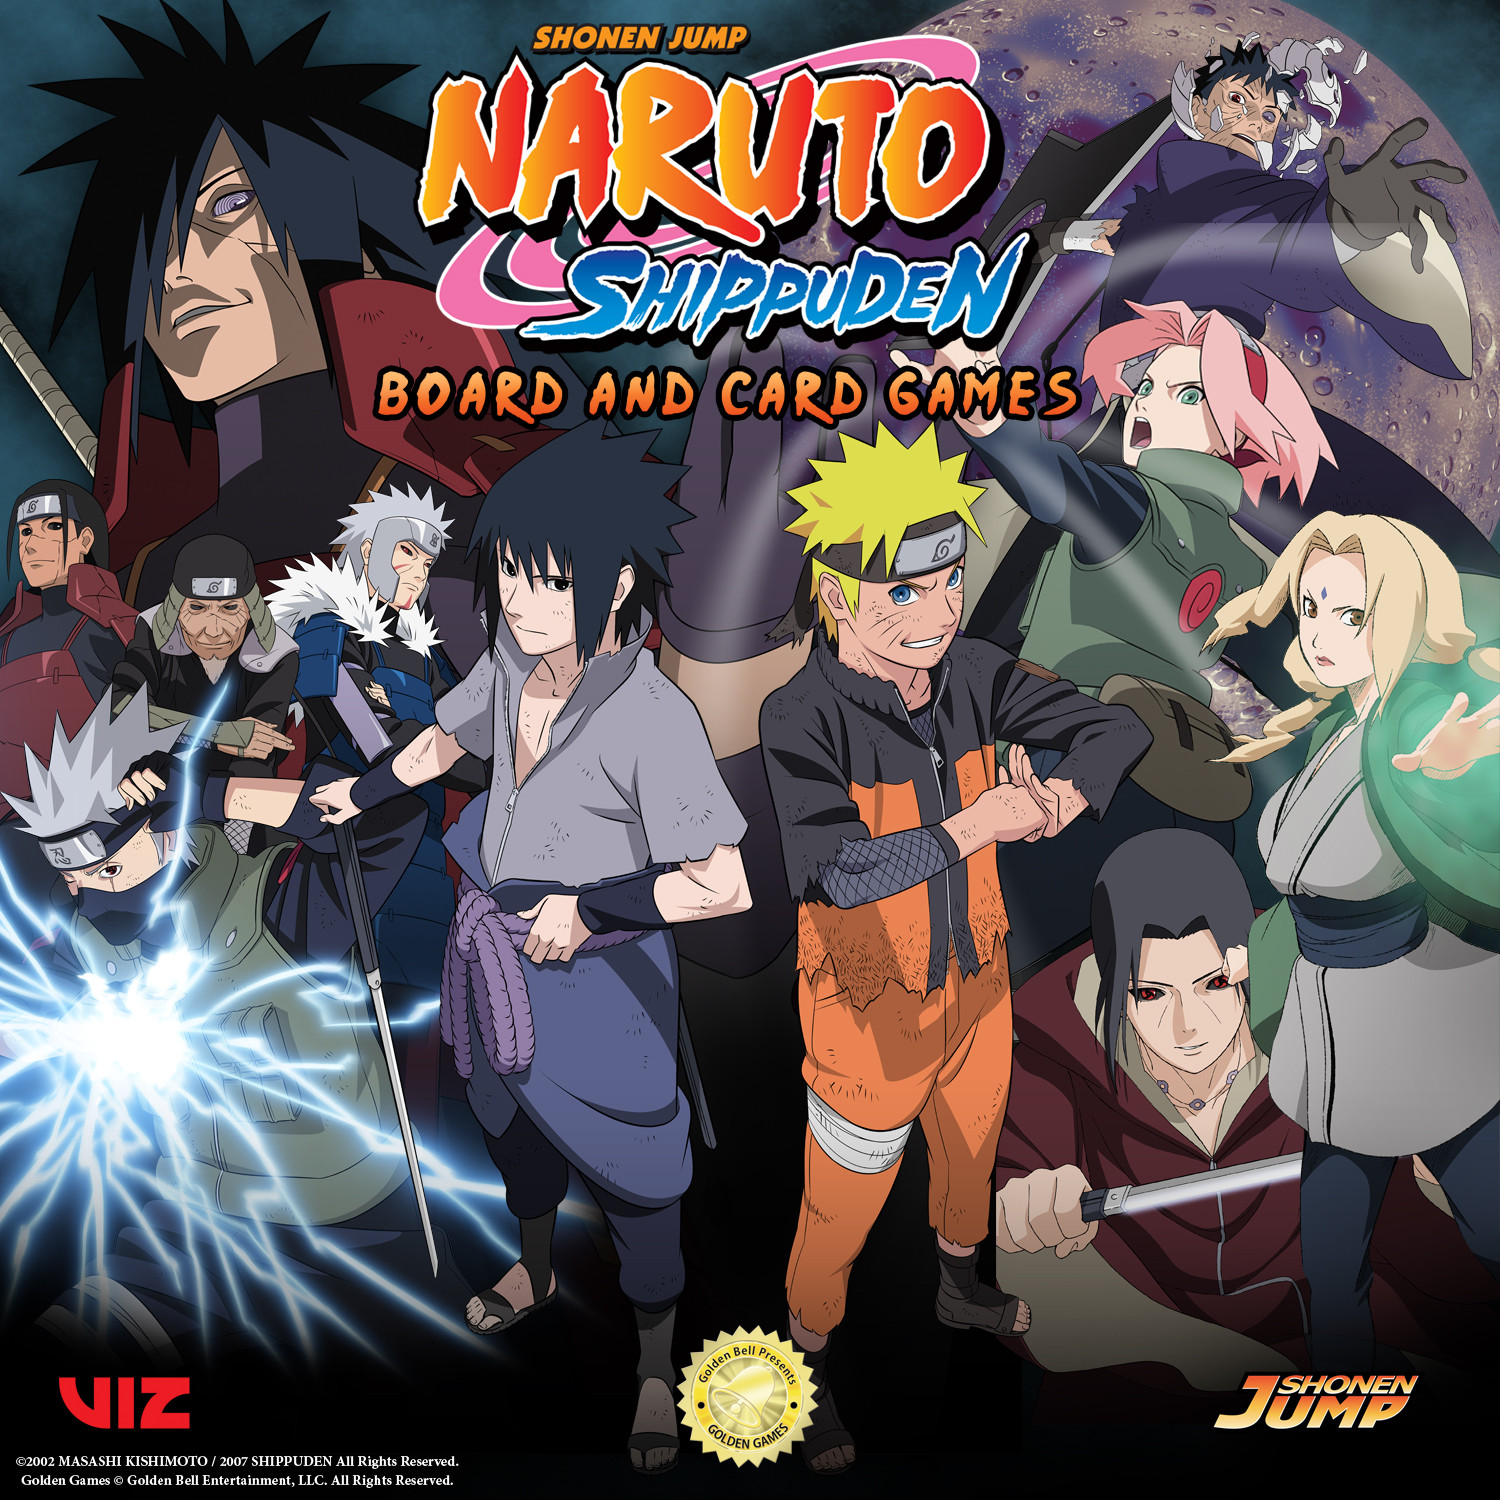 Telecharger naruto volume 1 bahasa indonesie:: stanciocartynelp. Tk.